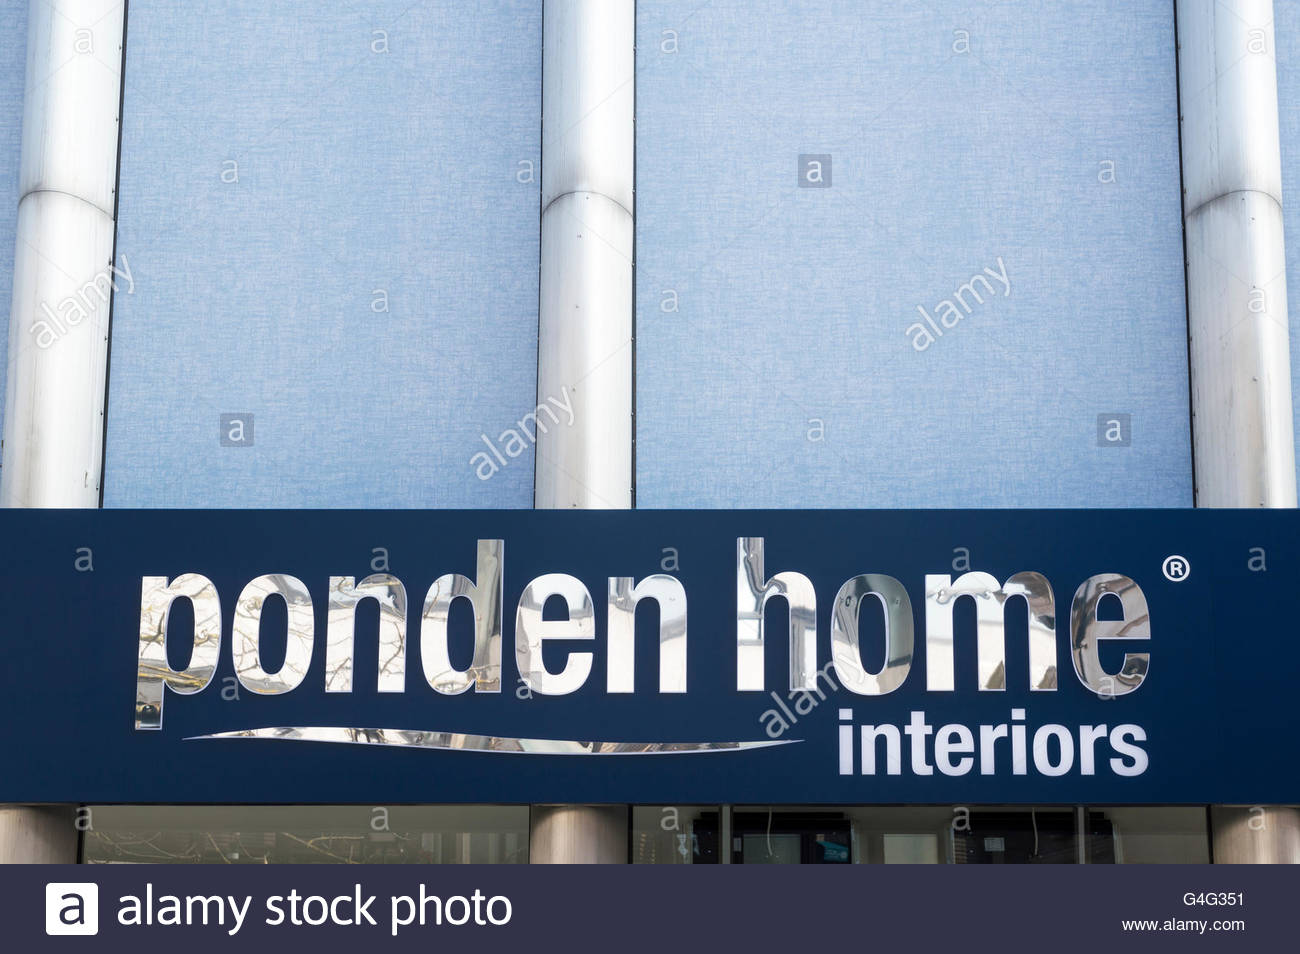 Close-up of the Ponden Home Interiors sign above the entrance of the Poole, Dorset shop. - Stock Image